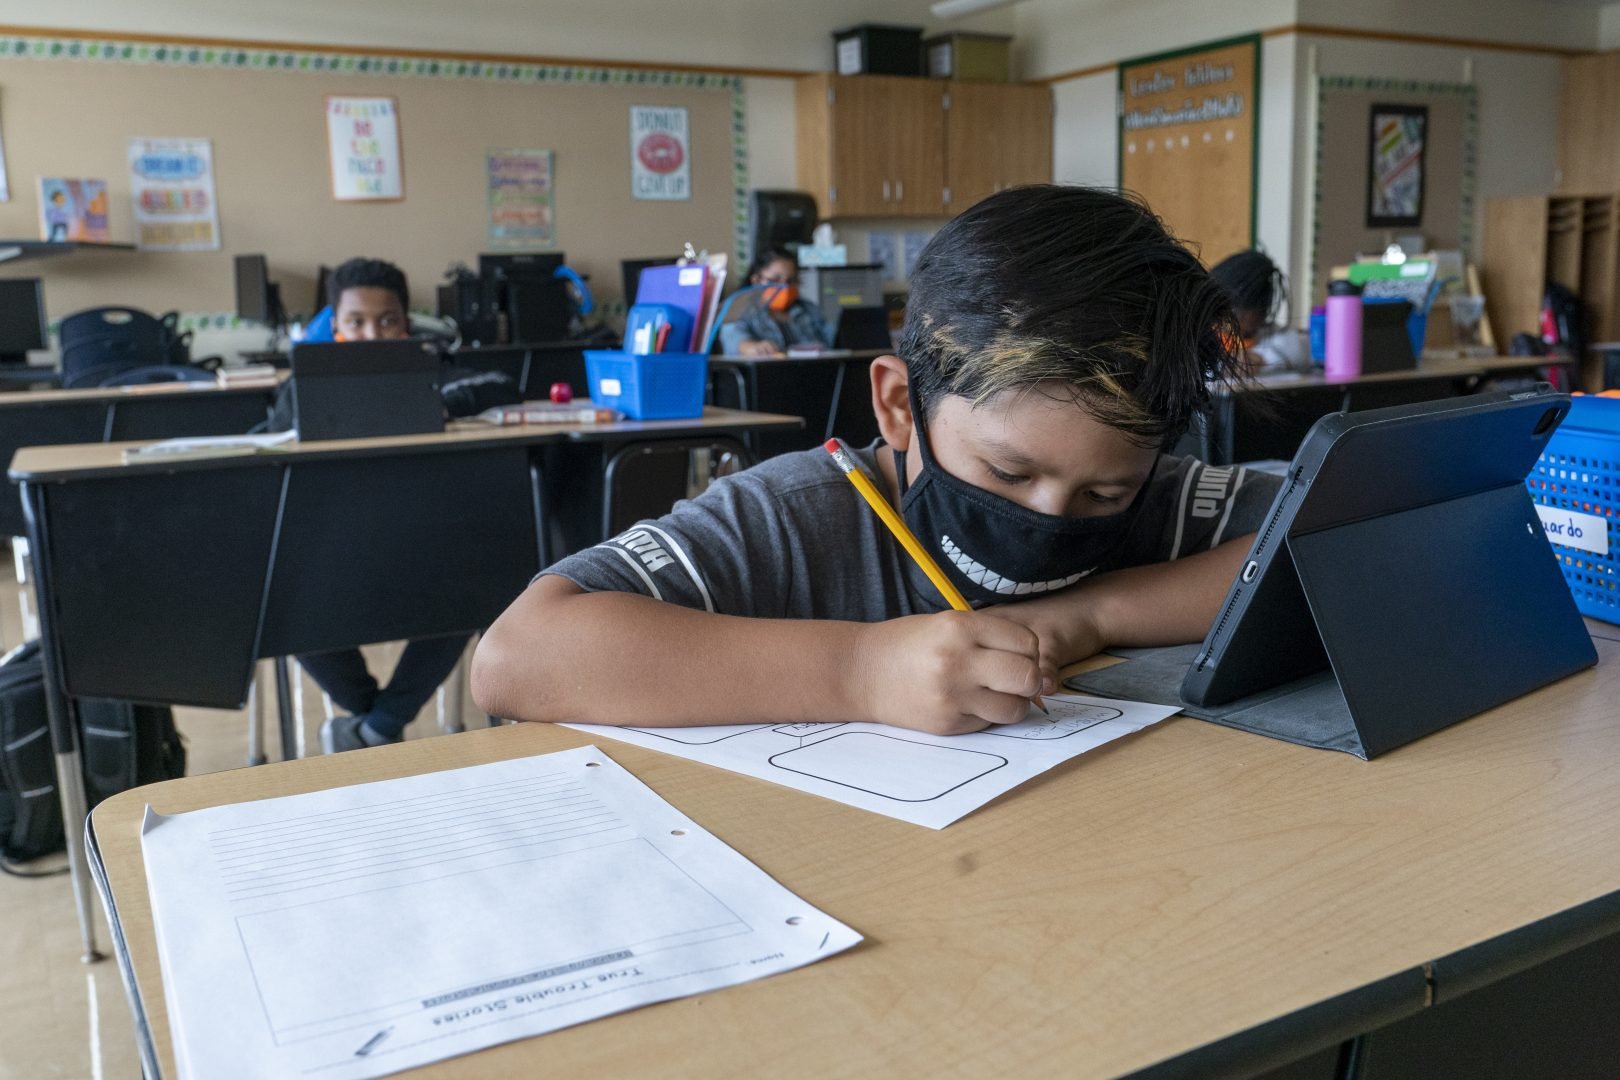 FILE PHOTO: A student wears a face mask while doing work at his desk at the Post Road Elementary School, in White Plains, N.Y., in this Thursday, Oct. 1, 2020, file photo.